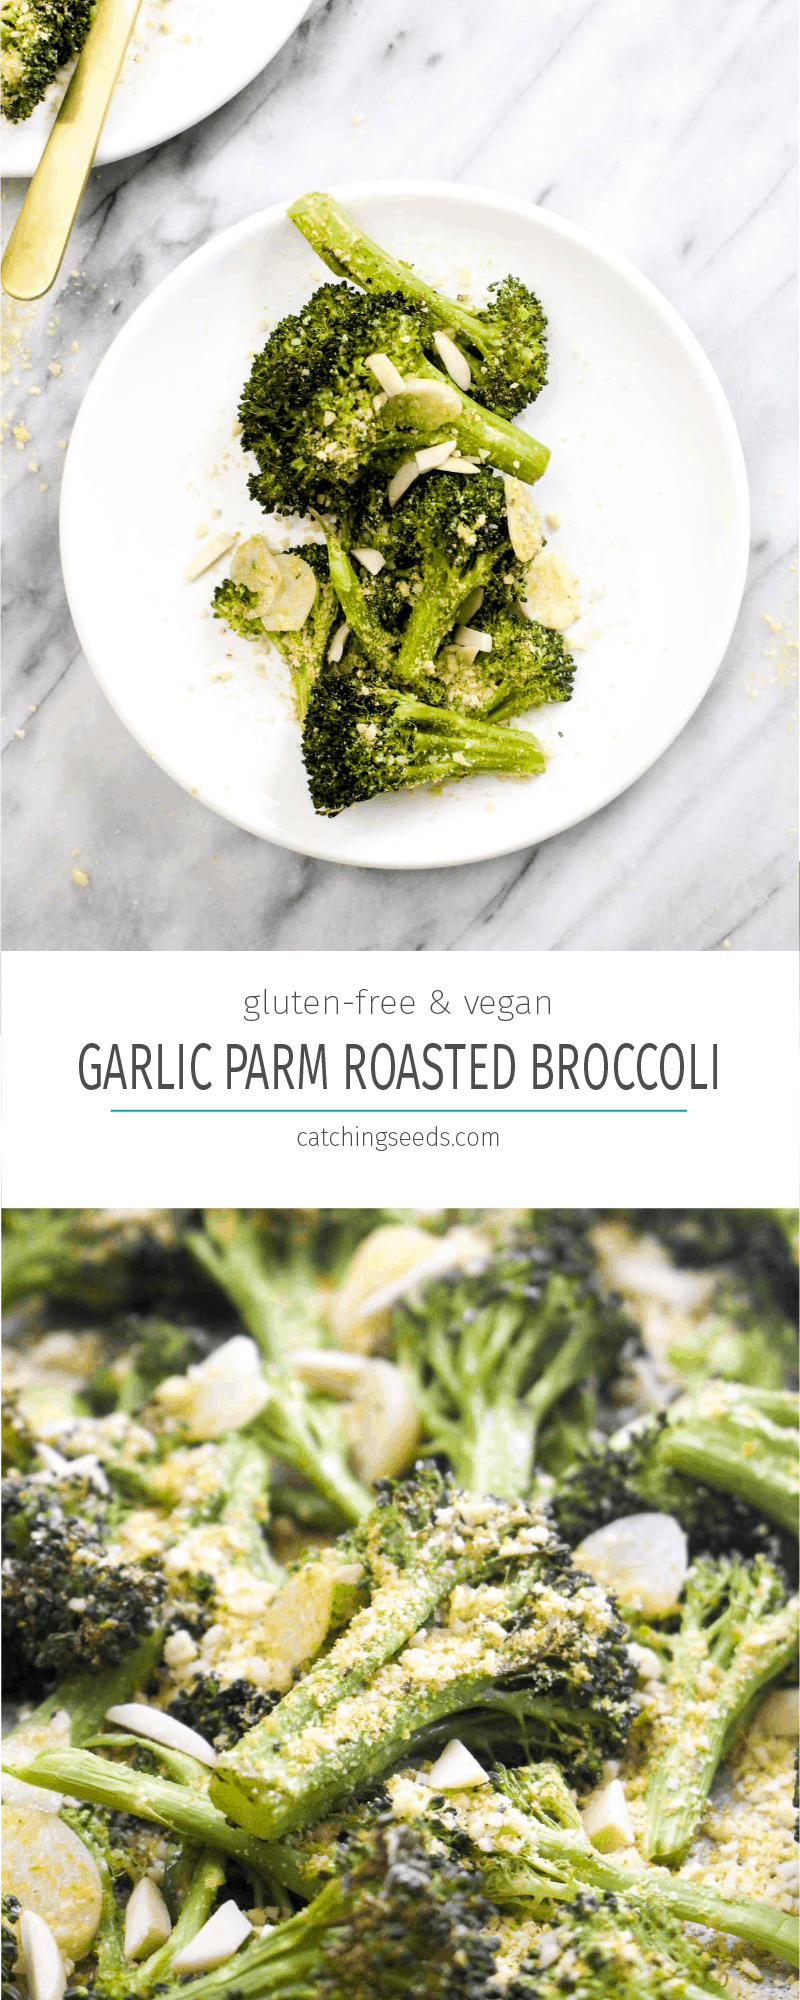 Parmesan Garlic Roasted Broccoli is a simple 4 ingredient healthy recipe that goes with any meal. The garlic flavor is unreal. And this side happens to be paleo, vegan, grain-free, gluten-free, dairy-free, and healthy to boot! | CatchingSeeds.com